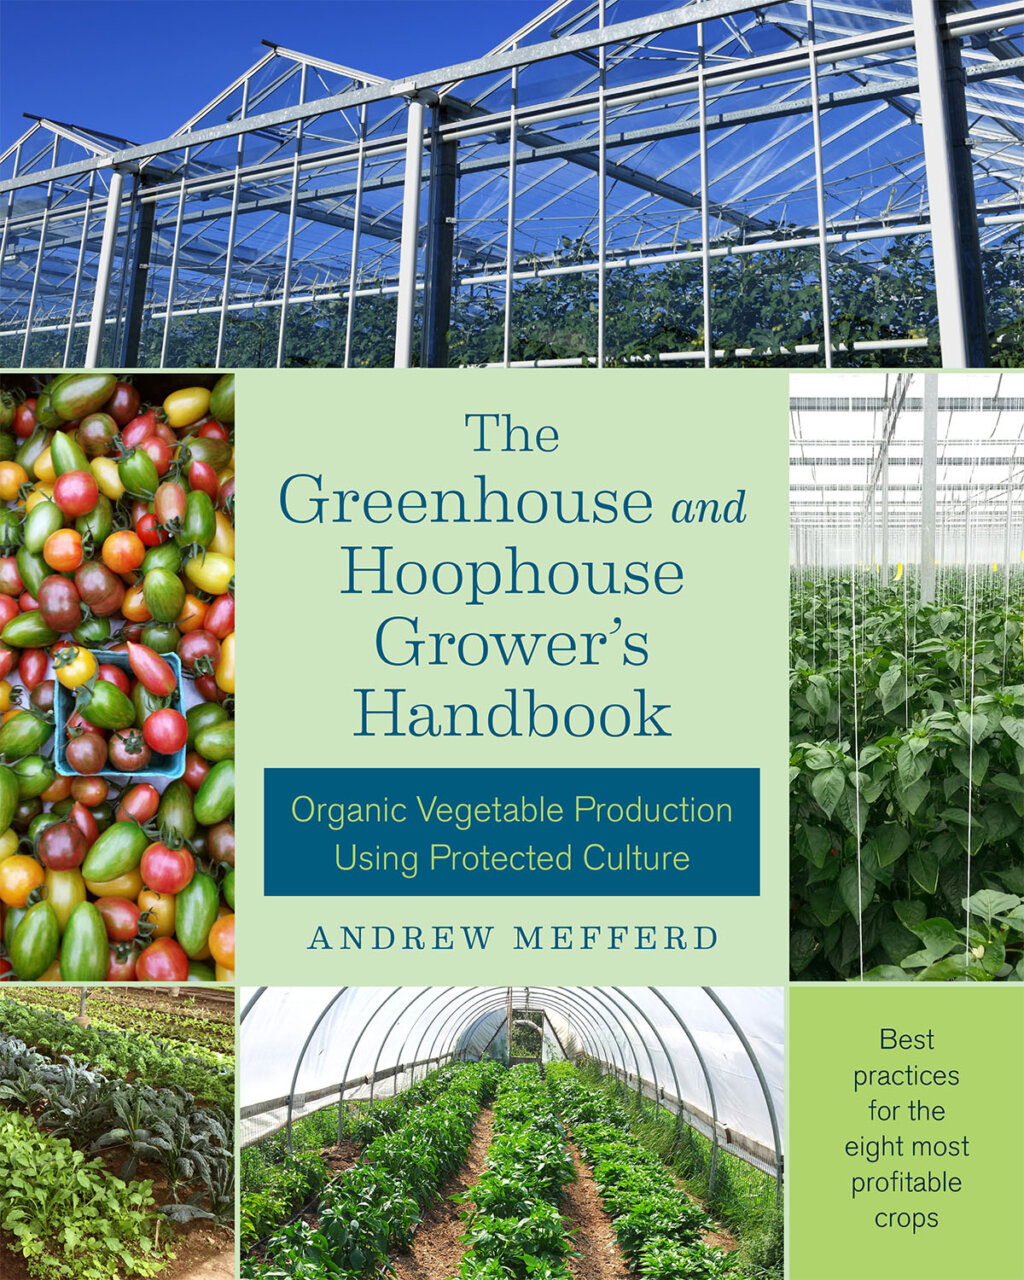 The Greenhouse and Hoophouse Grower's Handbook cover